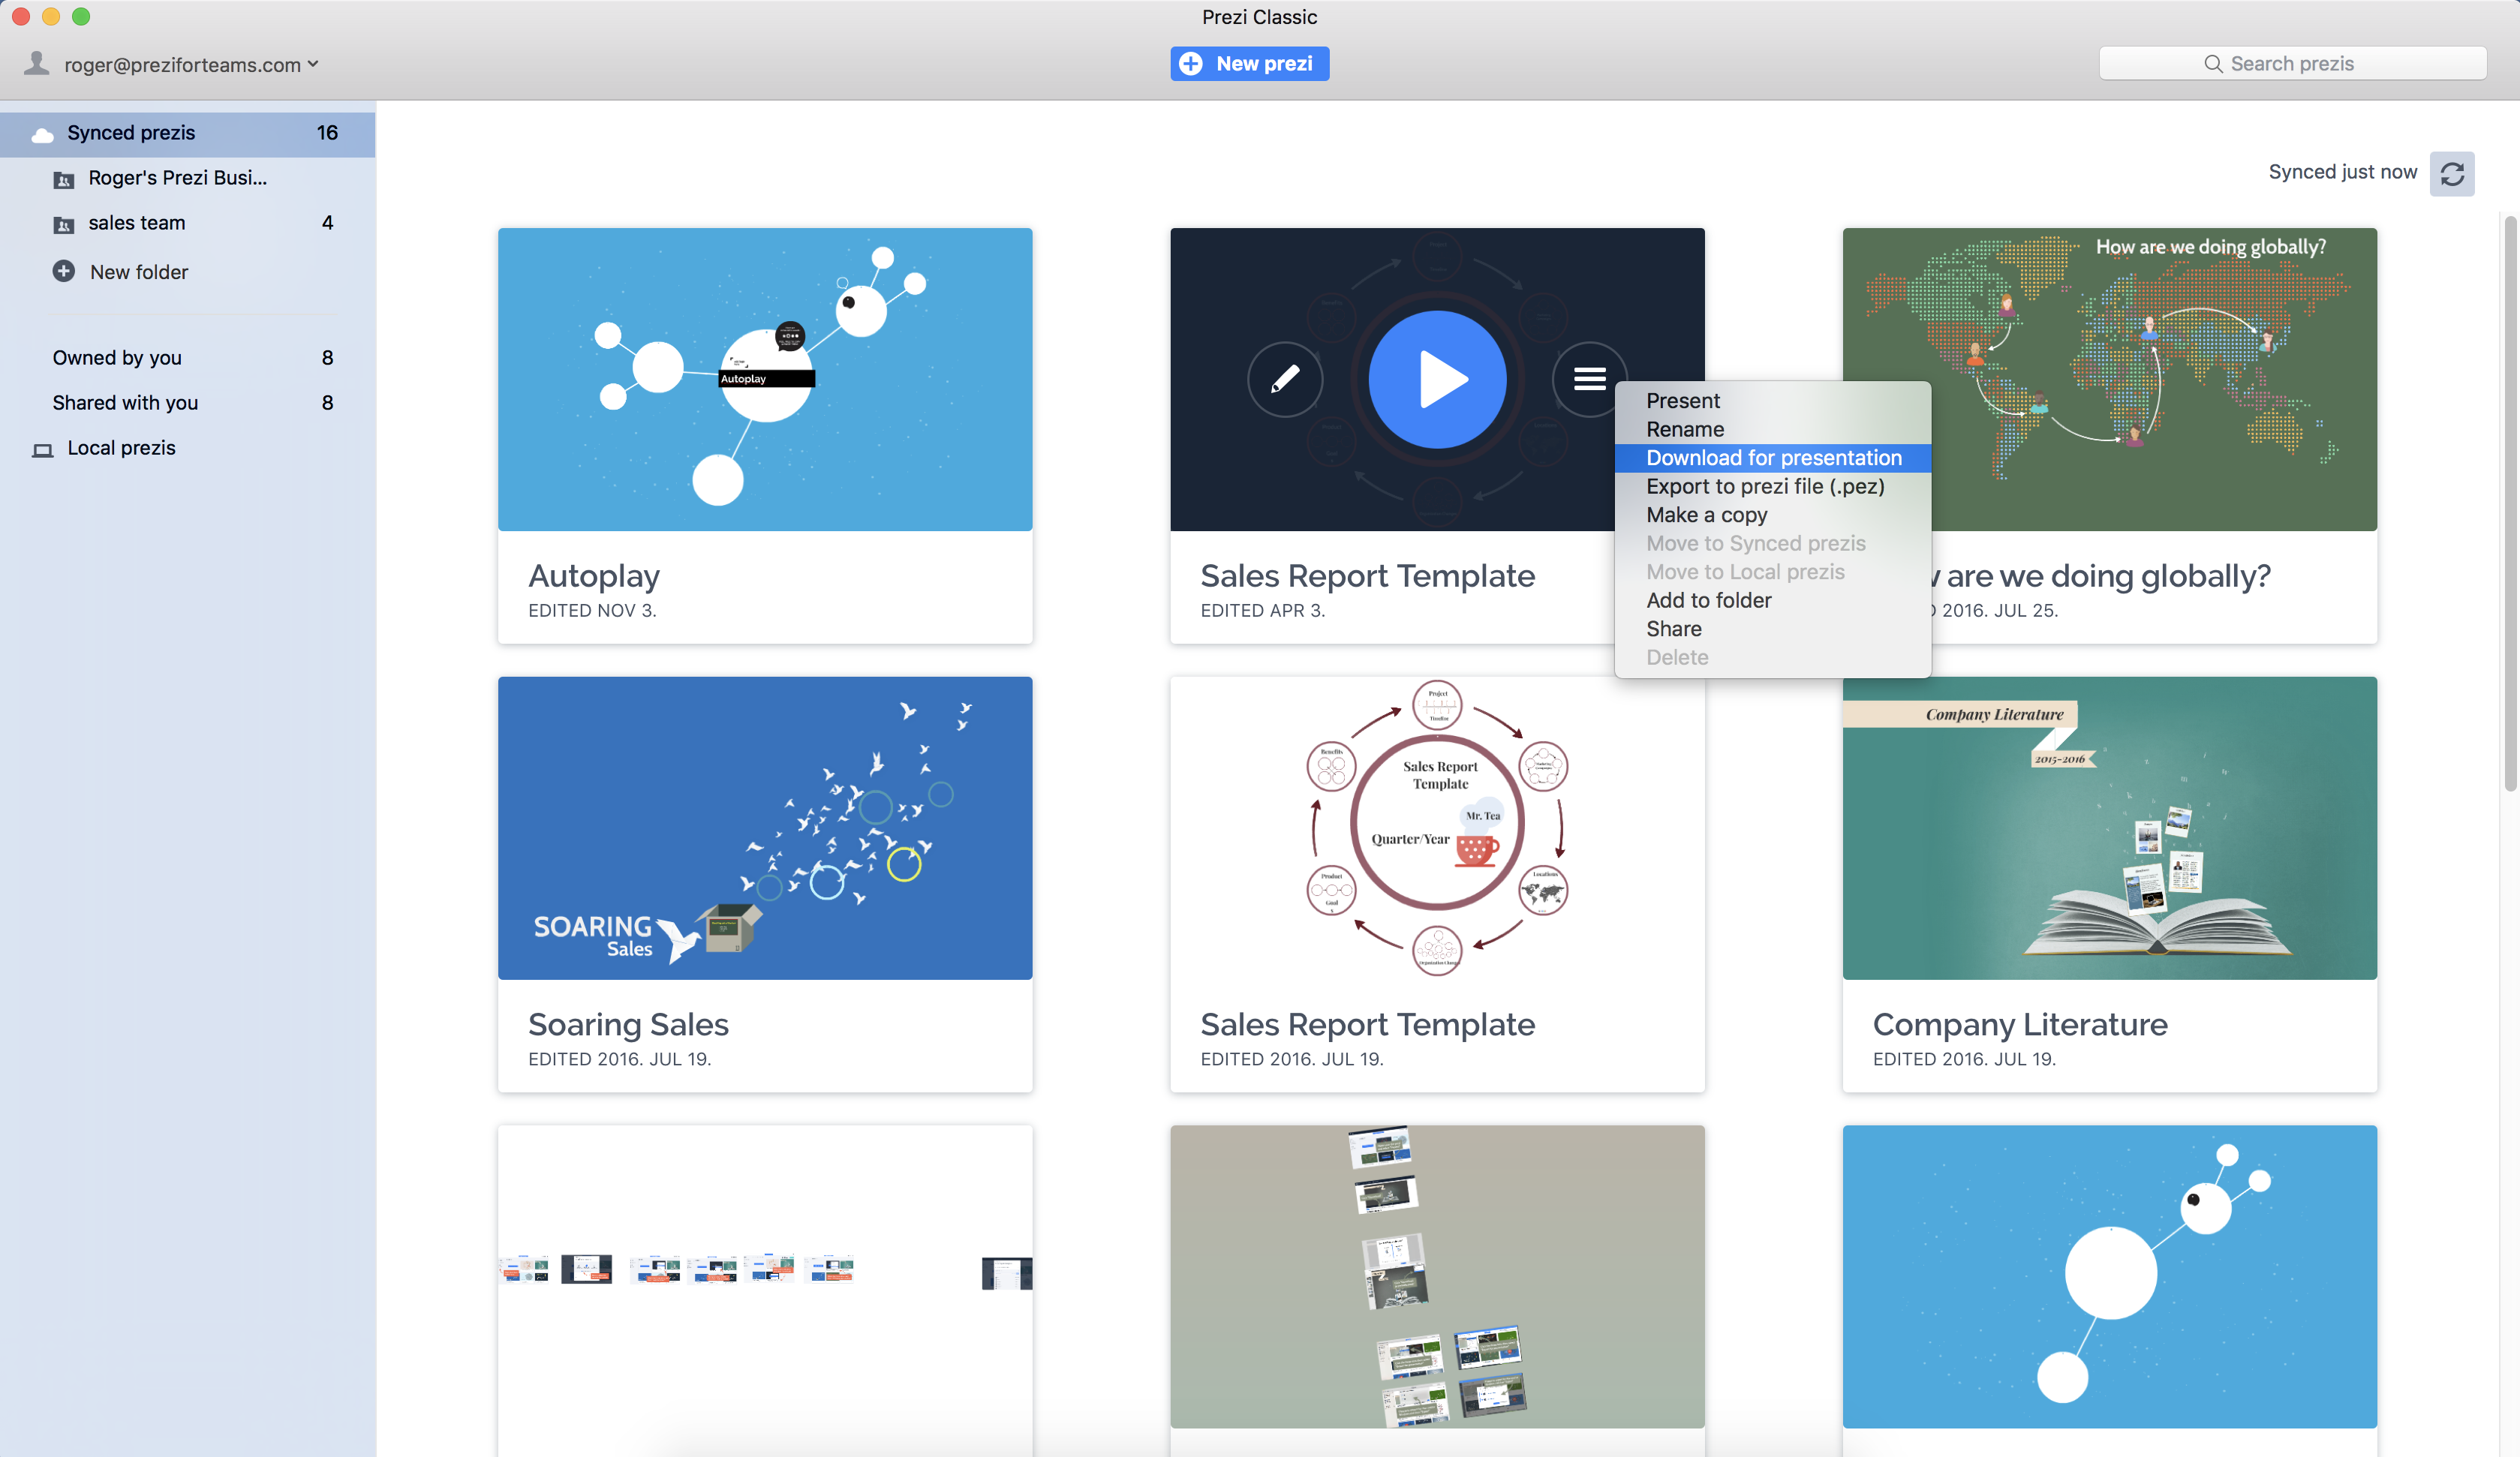 Edit, store, sync, and present prezis anywhere, online or offline